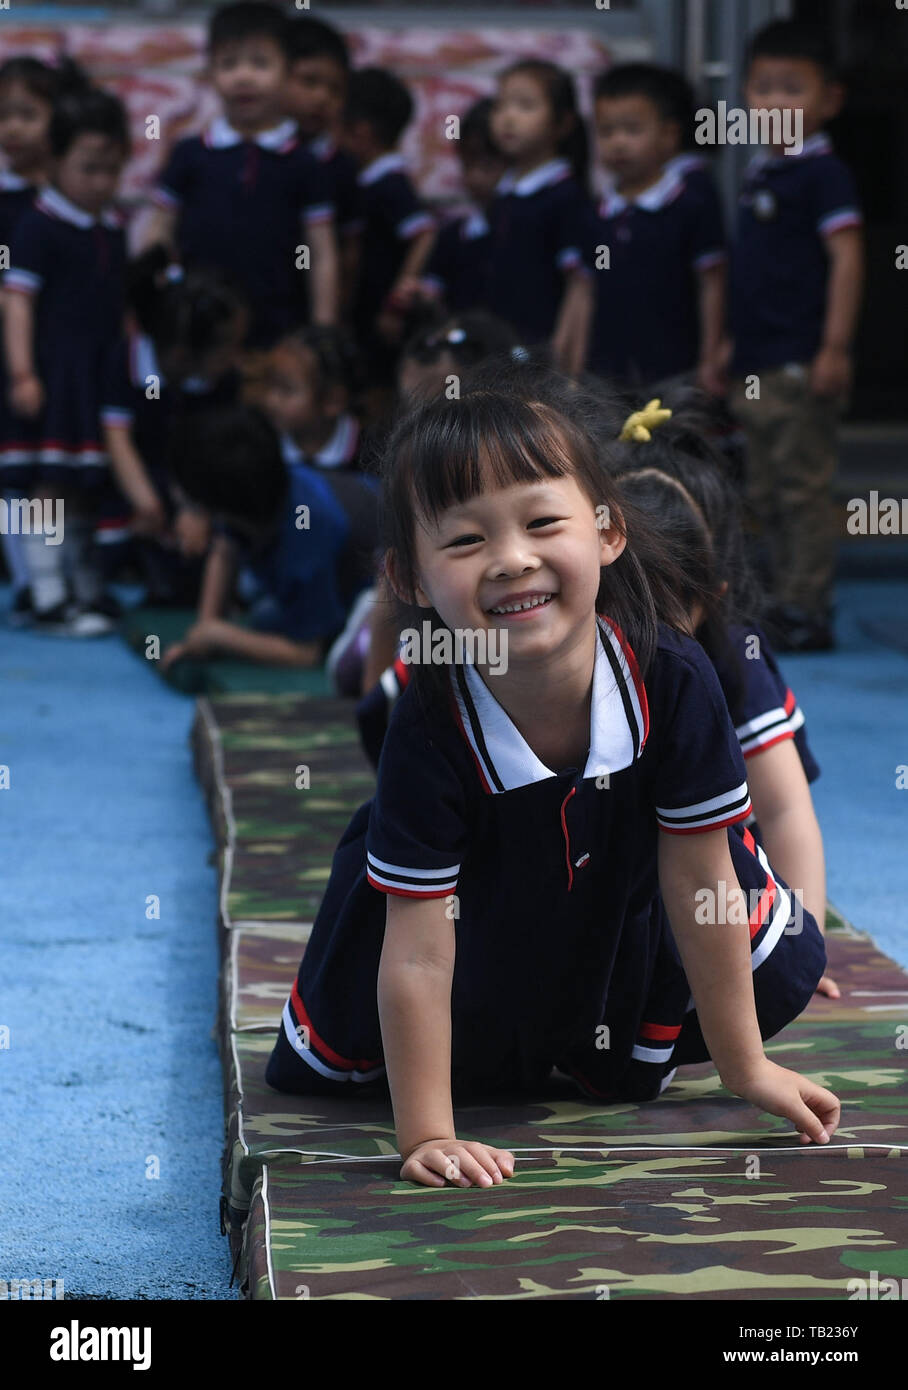 Changxing, China's Zhejiang Province. 29th May, 2019. Children take part in one of a series of extracurricular activities held by the Central Kindergarten in celebration of the upcoming International Children's Day in Lijiaxiang Township of Changxing County, east China's Zhejiang Province, May 29, 2019. Credit: Xu Yu/Xinhua/Alamy Live News - Stock Image